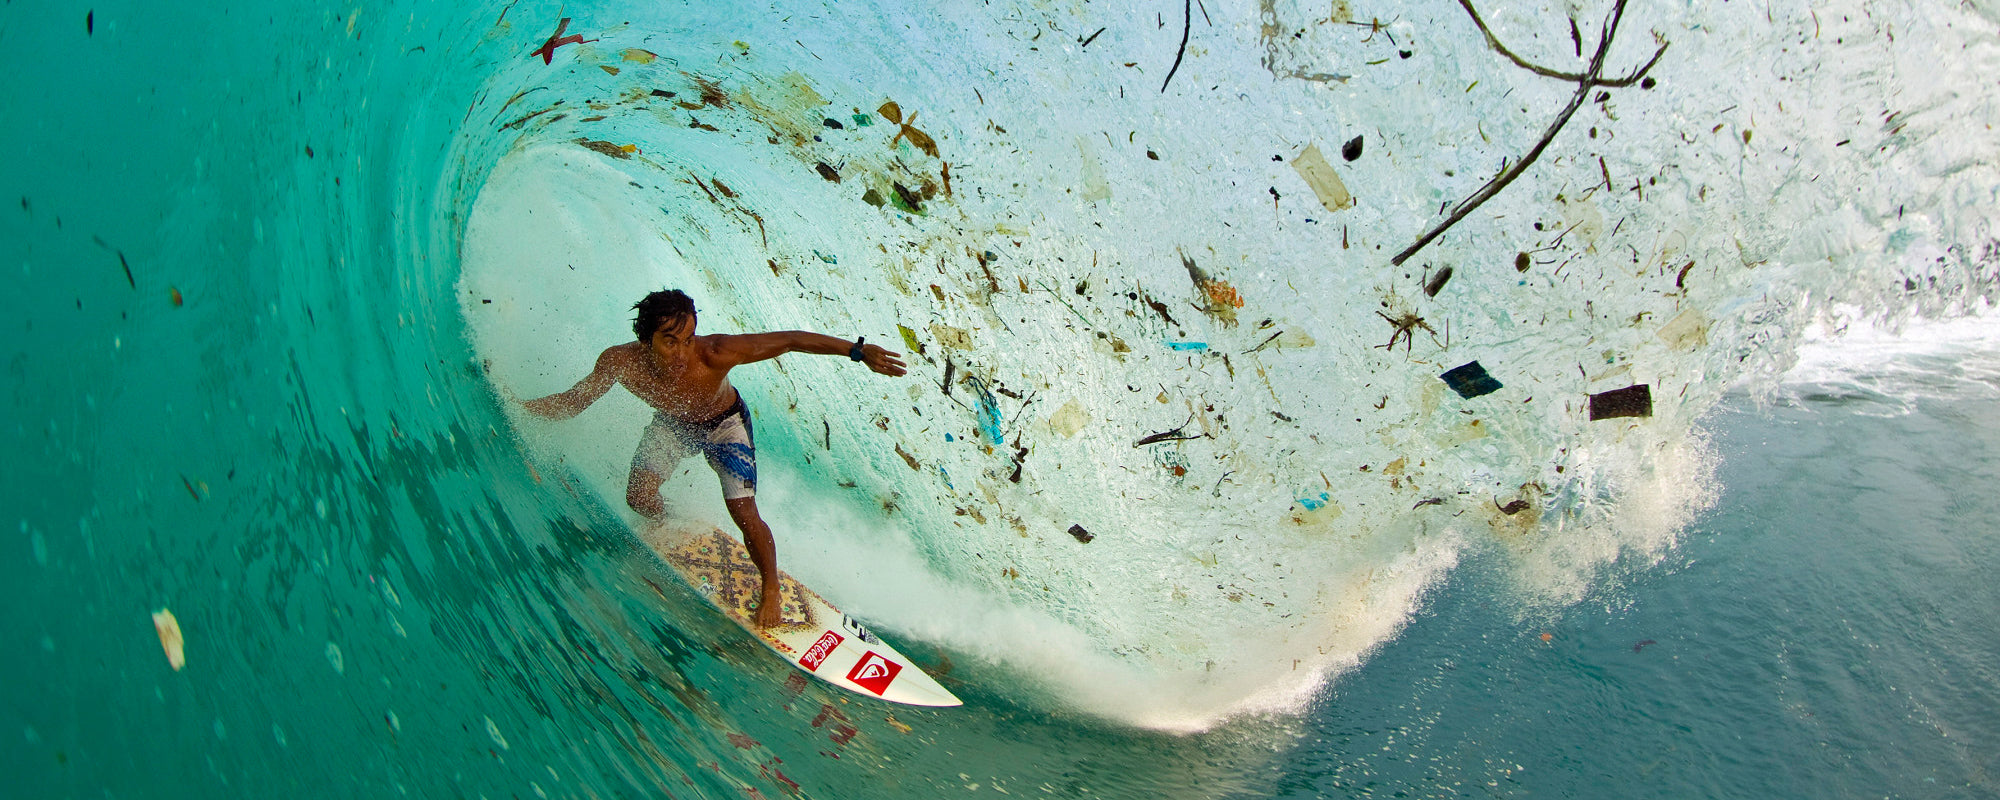 Surfer surrounded by plastic in Bali - Zak Noyle